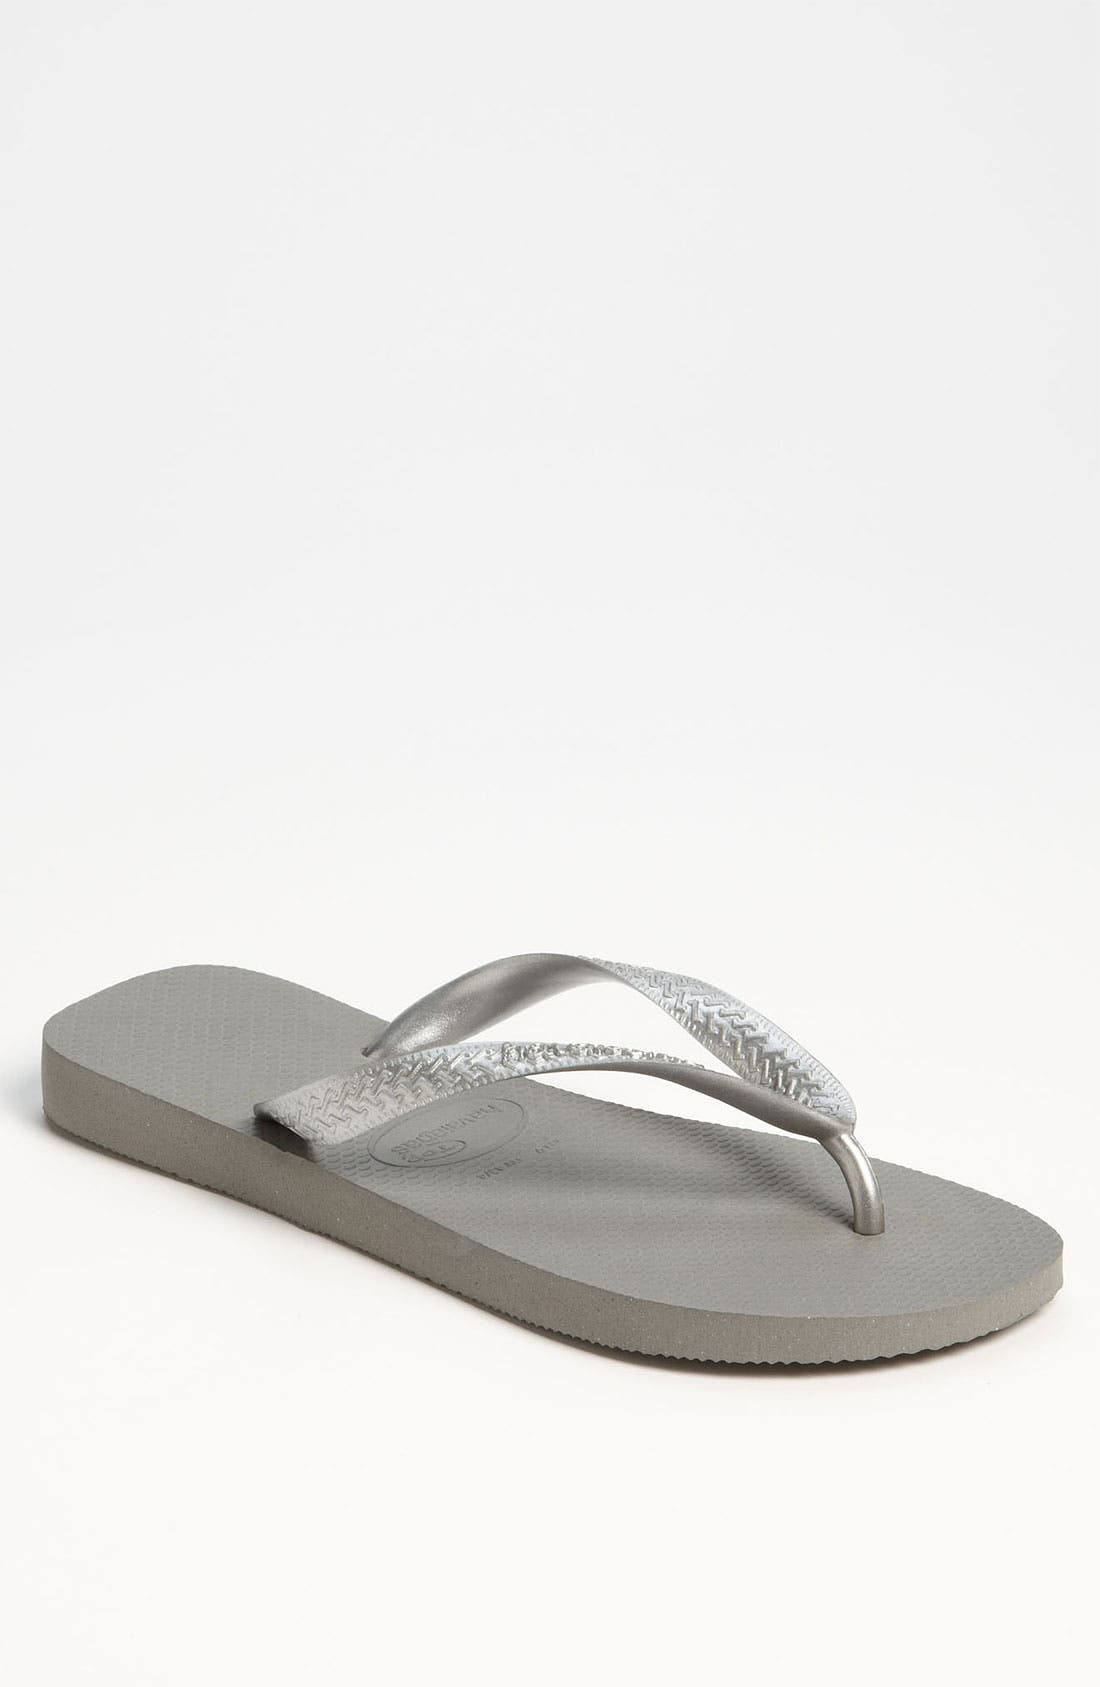 Alternate Image 1 Selected - Havaianas 'Top' Flip Flop